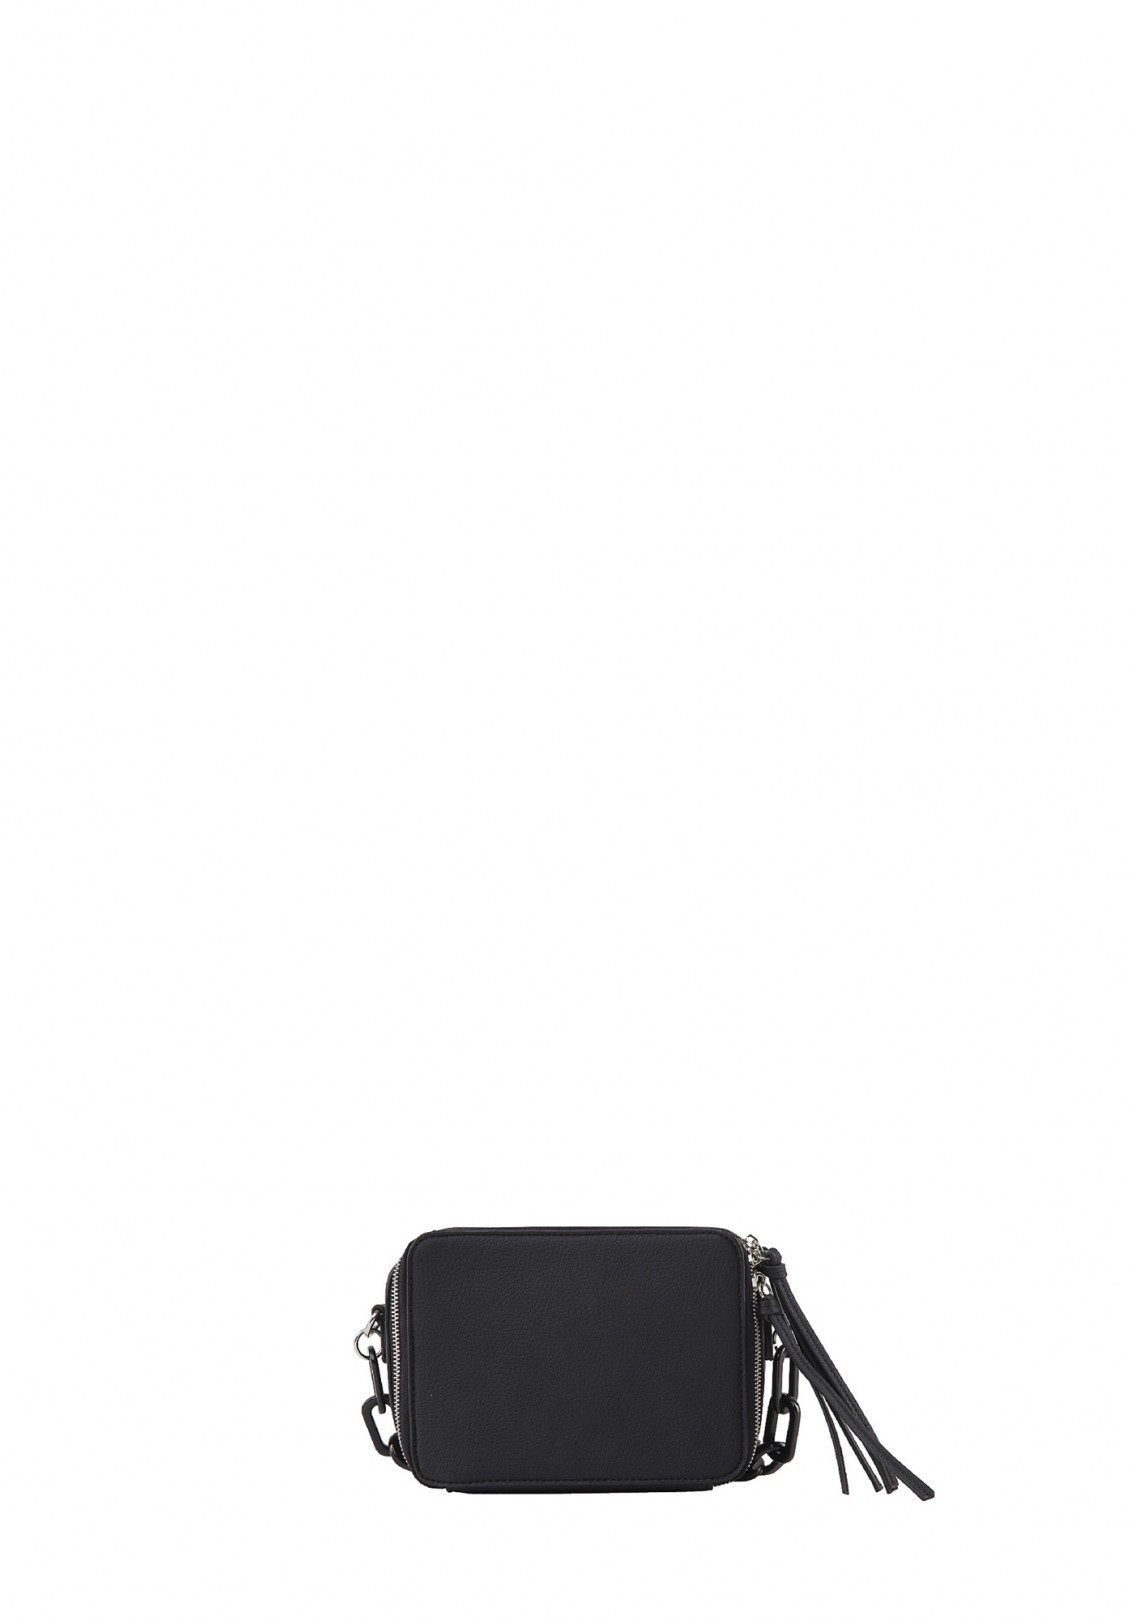 SHOULDER BAG - GBDA1060 - GAELLE PARIS